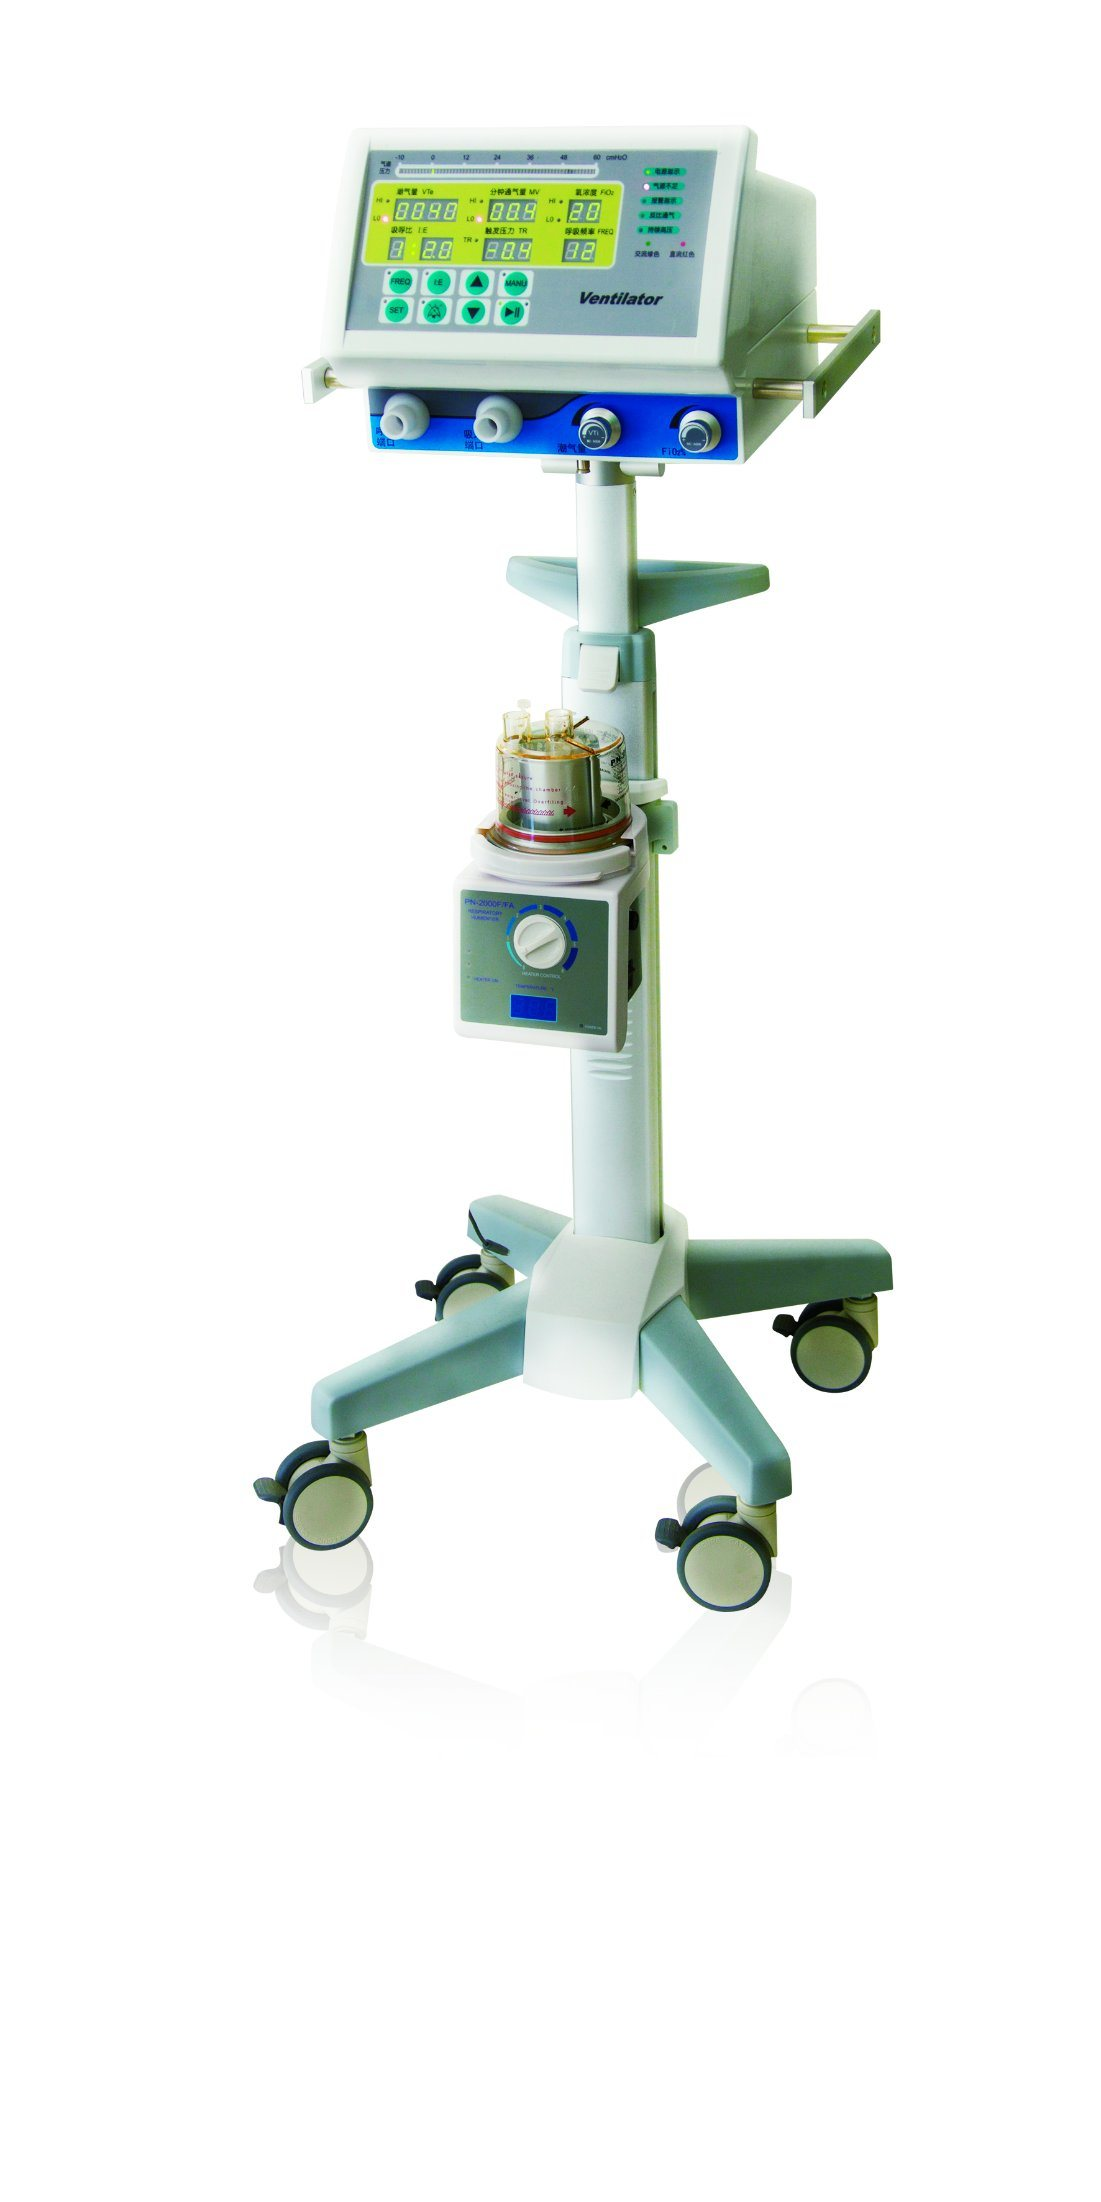 Medical/Hospital Ventilator Lh8400 for Operation and Rehabilitation